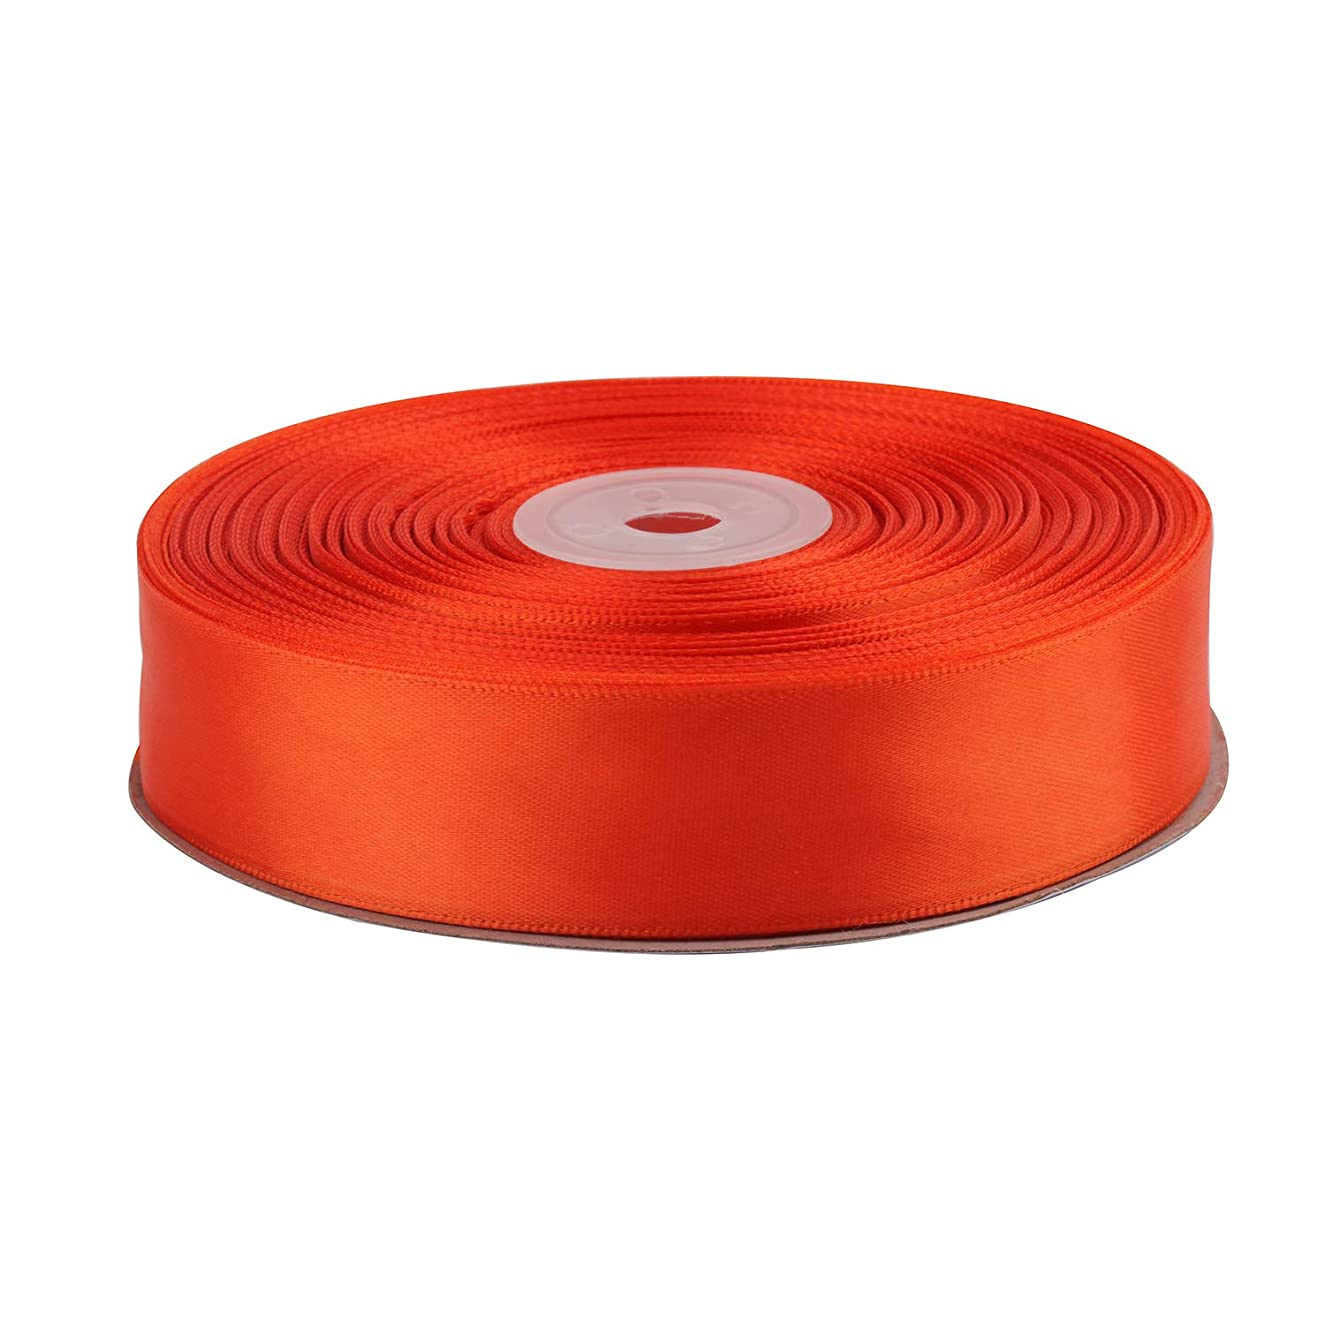 Red Satin Ribbon. High End Thick 1 Inch 50 Yards Roll Ribbons